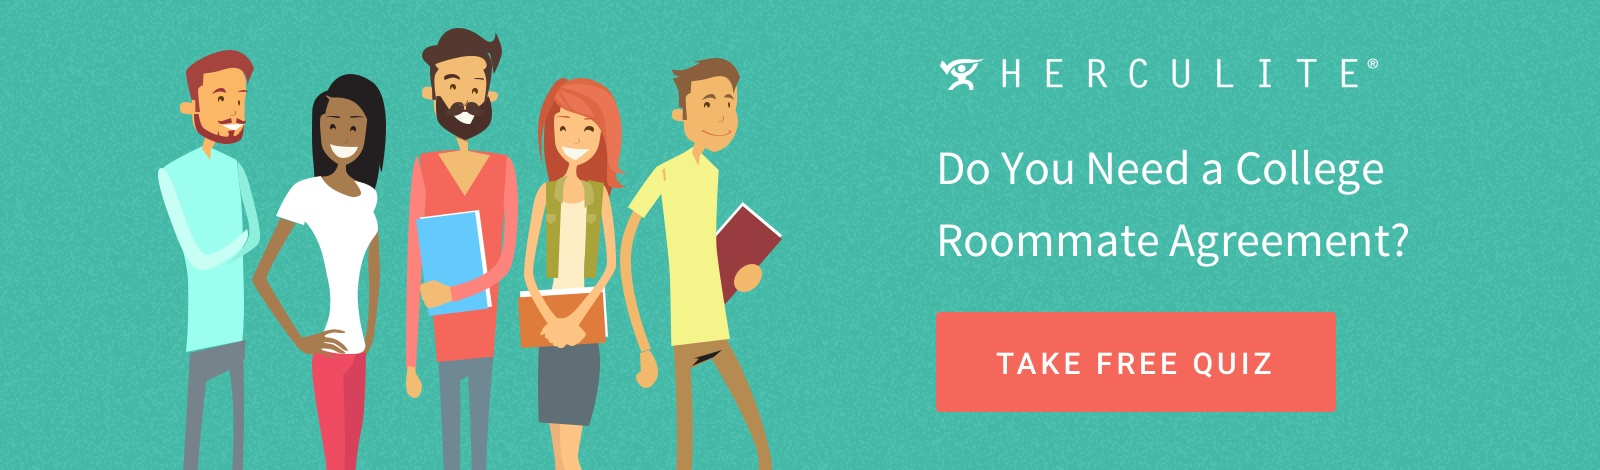 Download Do You Need a College Roommate Agreement Quiz CTA